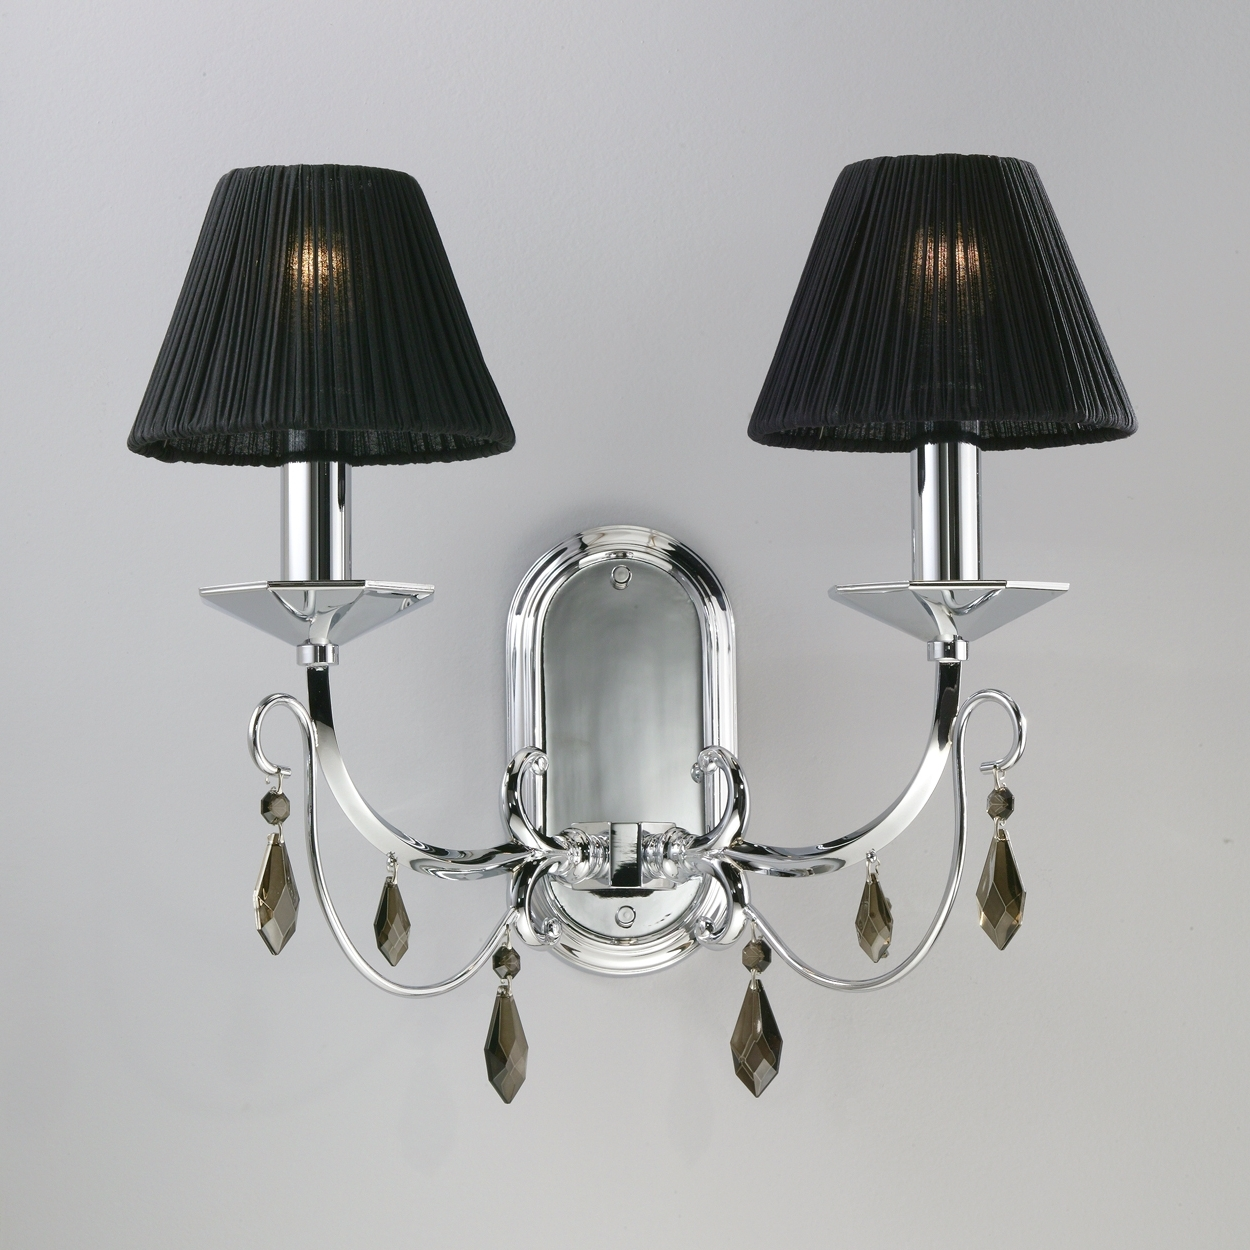 Black Clip On Lamp Shades – Lamp Design Ideas With Regard To 2018 Chandelier Lamp Shades Clip On (View 10 of 15)